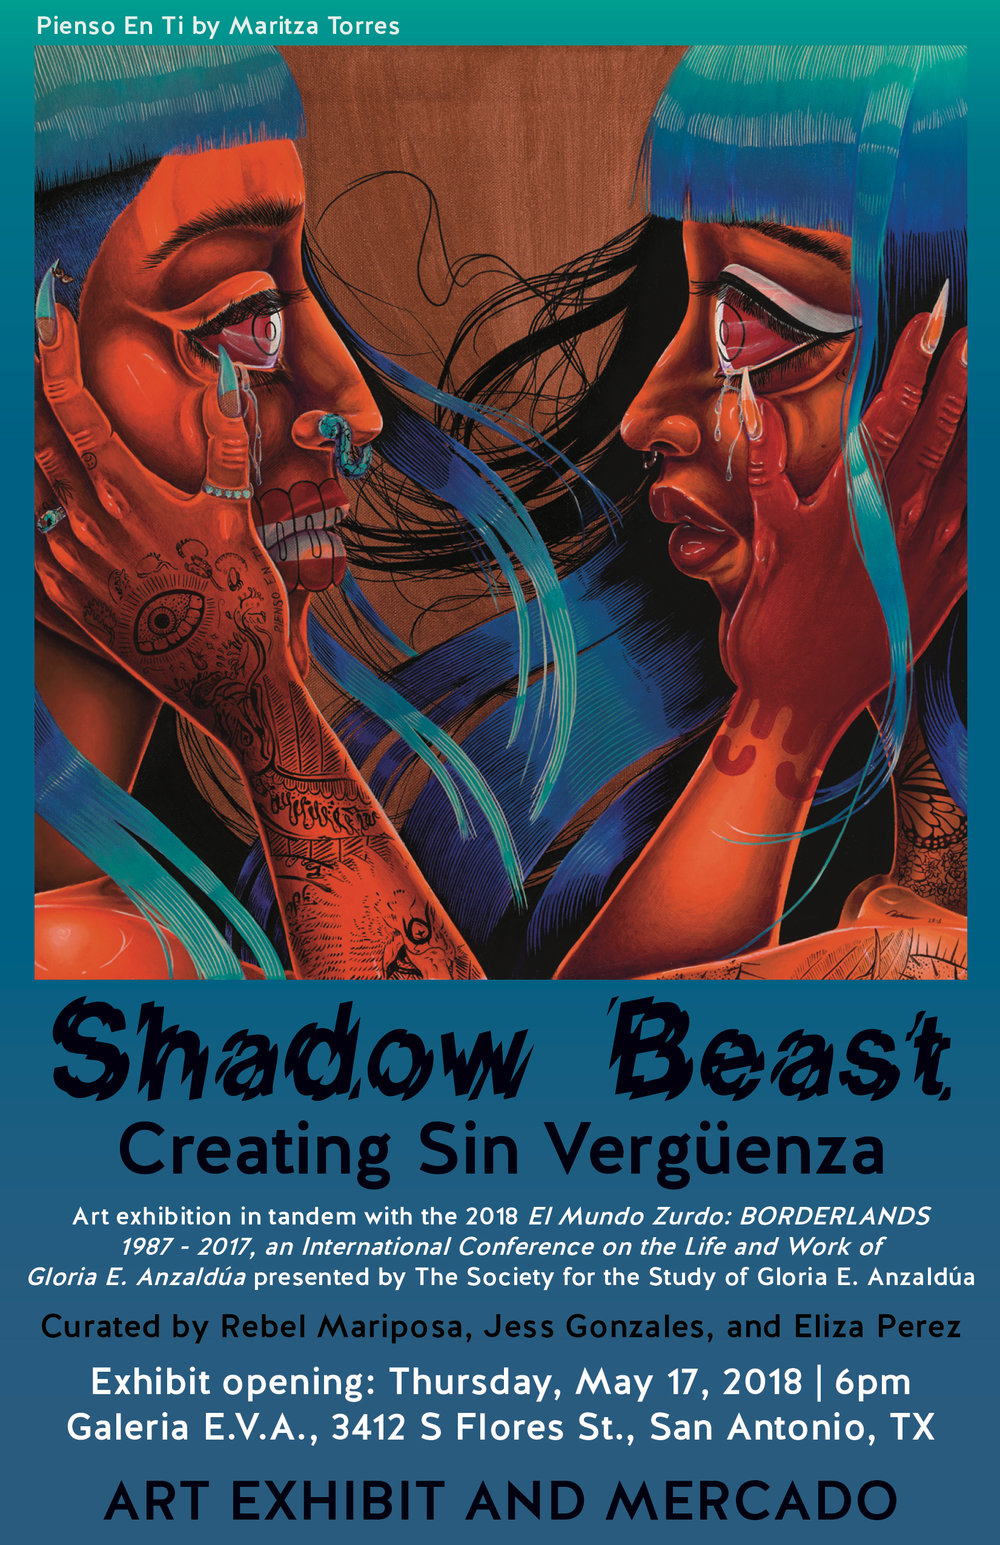 Event Flyer for Shadow Beast: Creating Sin Vergüenza, an art exhibition and mercado in San Antonio, TX on May 17, 2018.